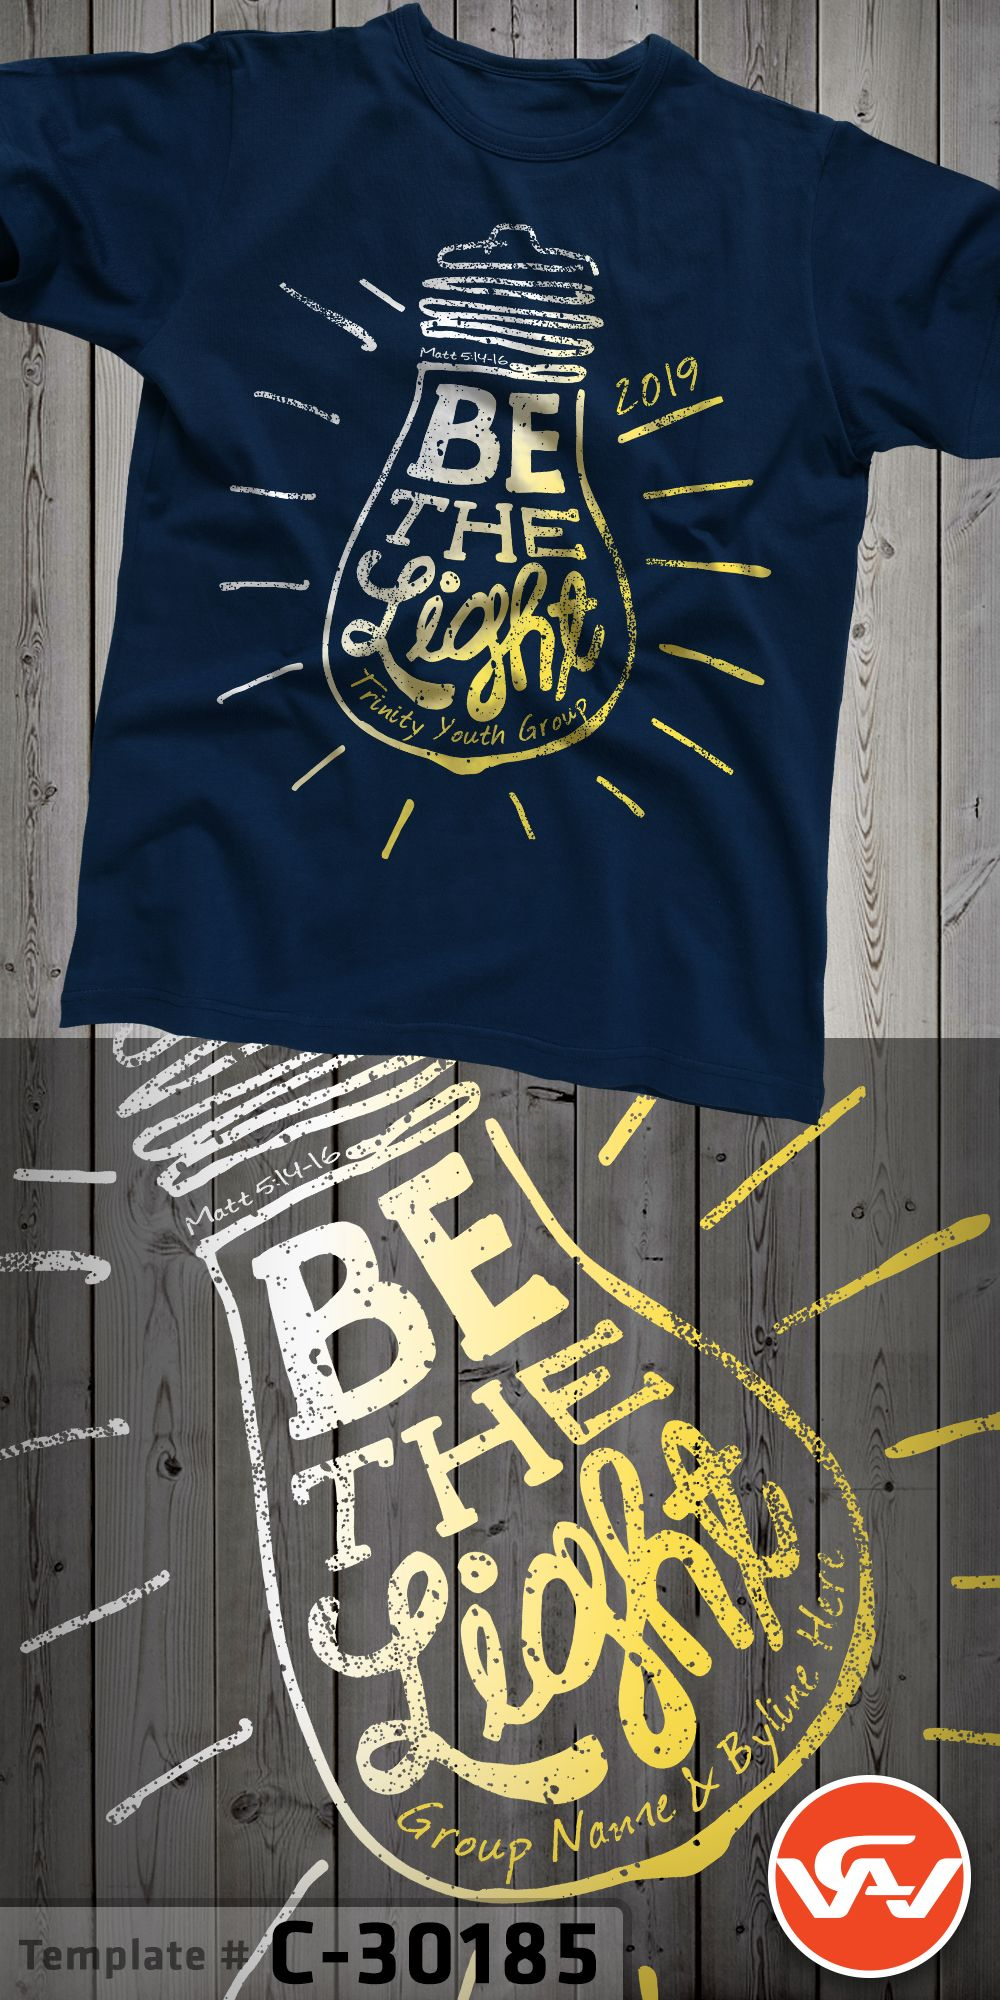 Youth Group Room Paint Ideas: Christian T-Shirt Design